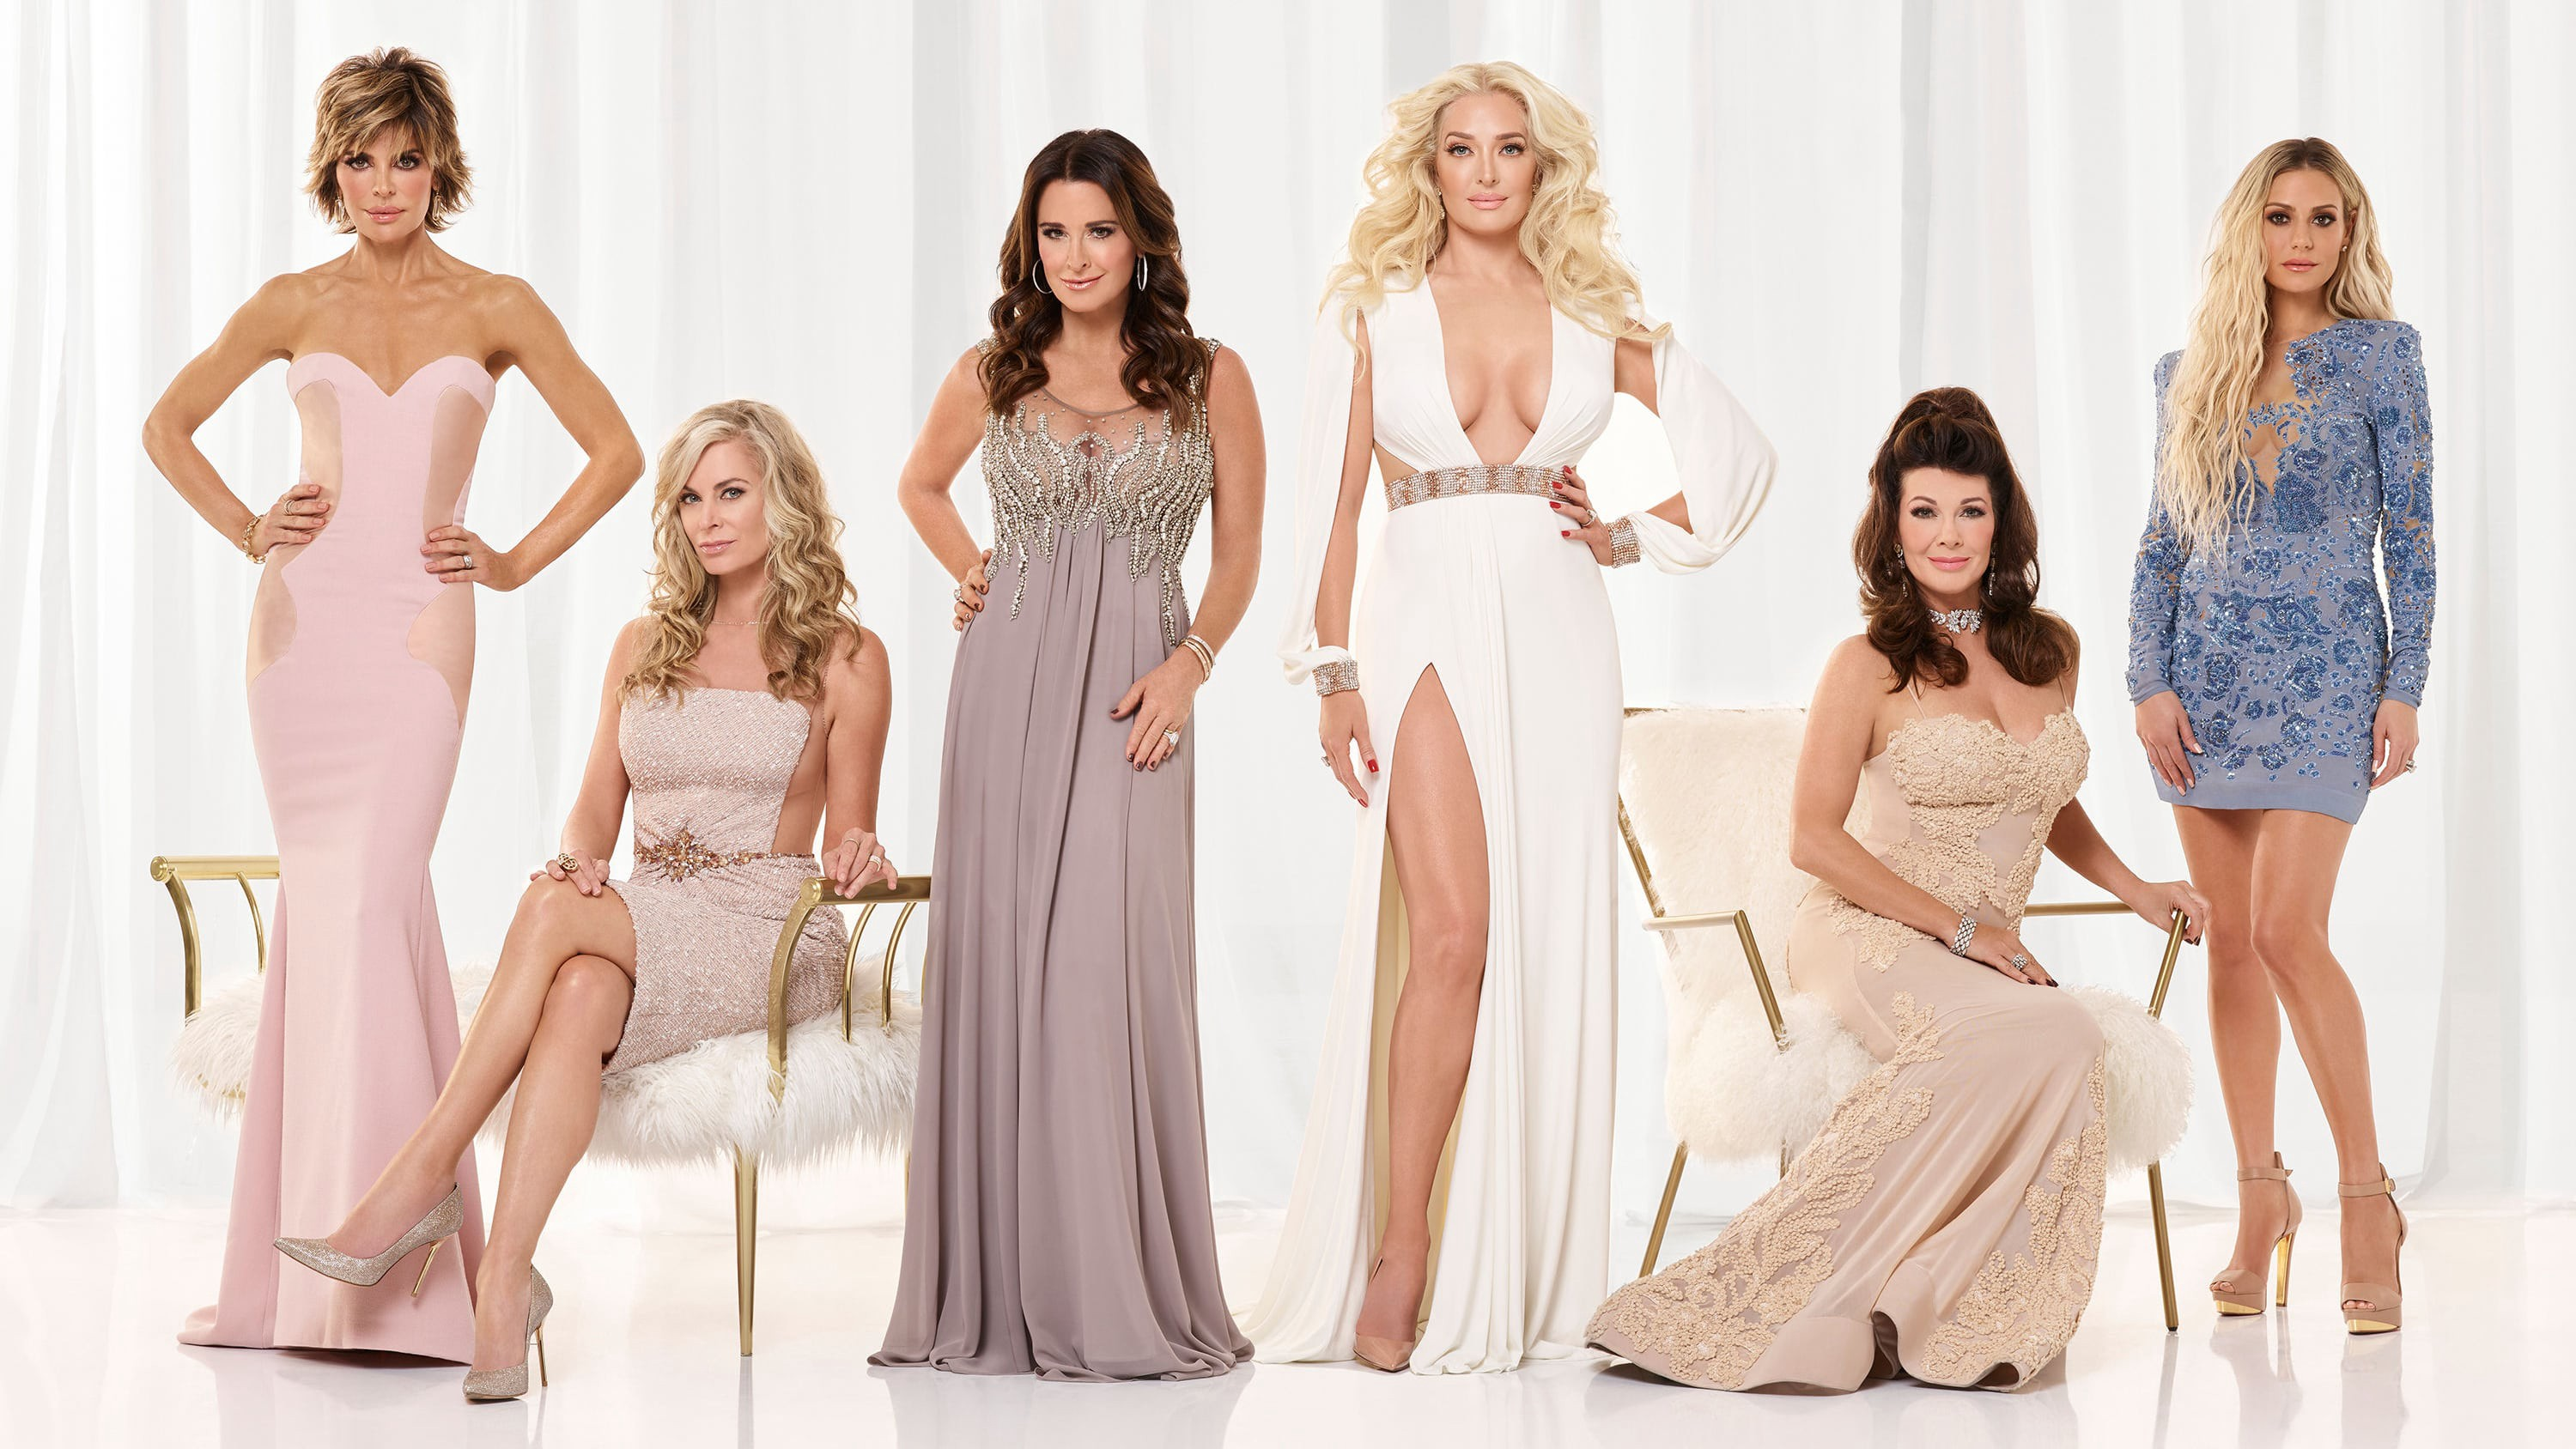 Real housewives of beverly hills season 9